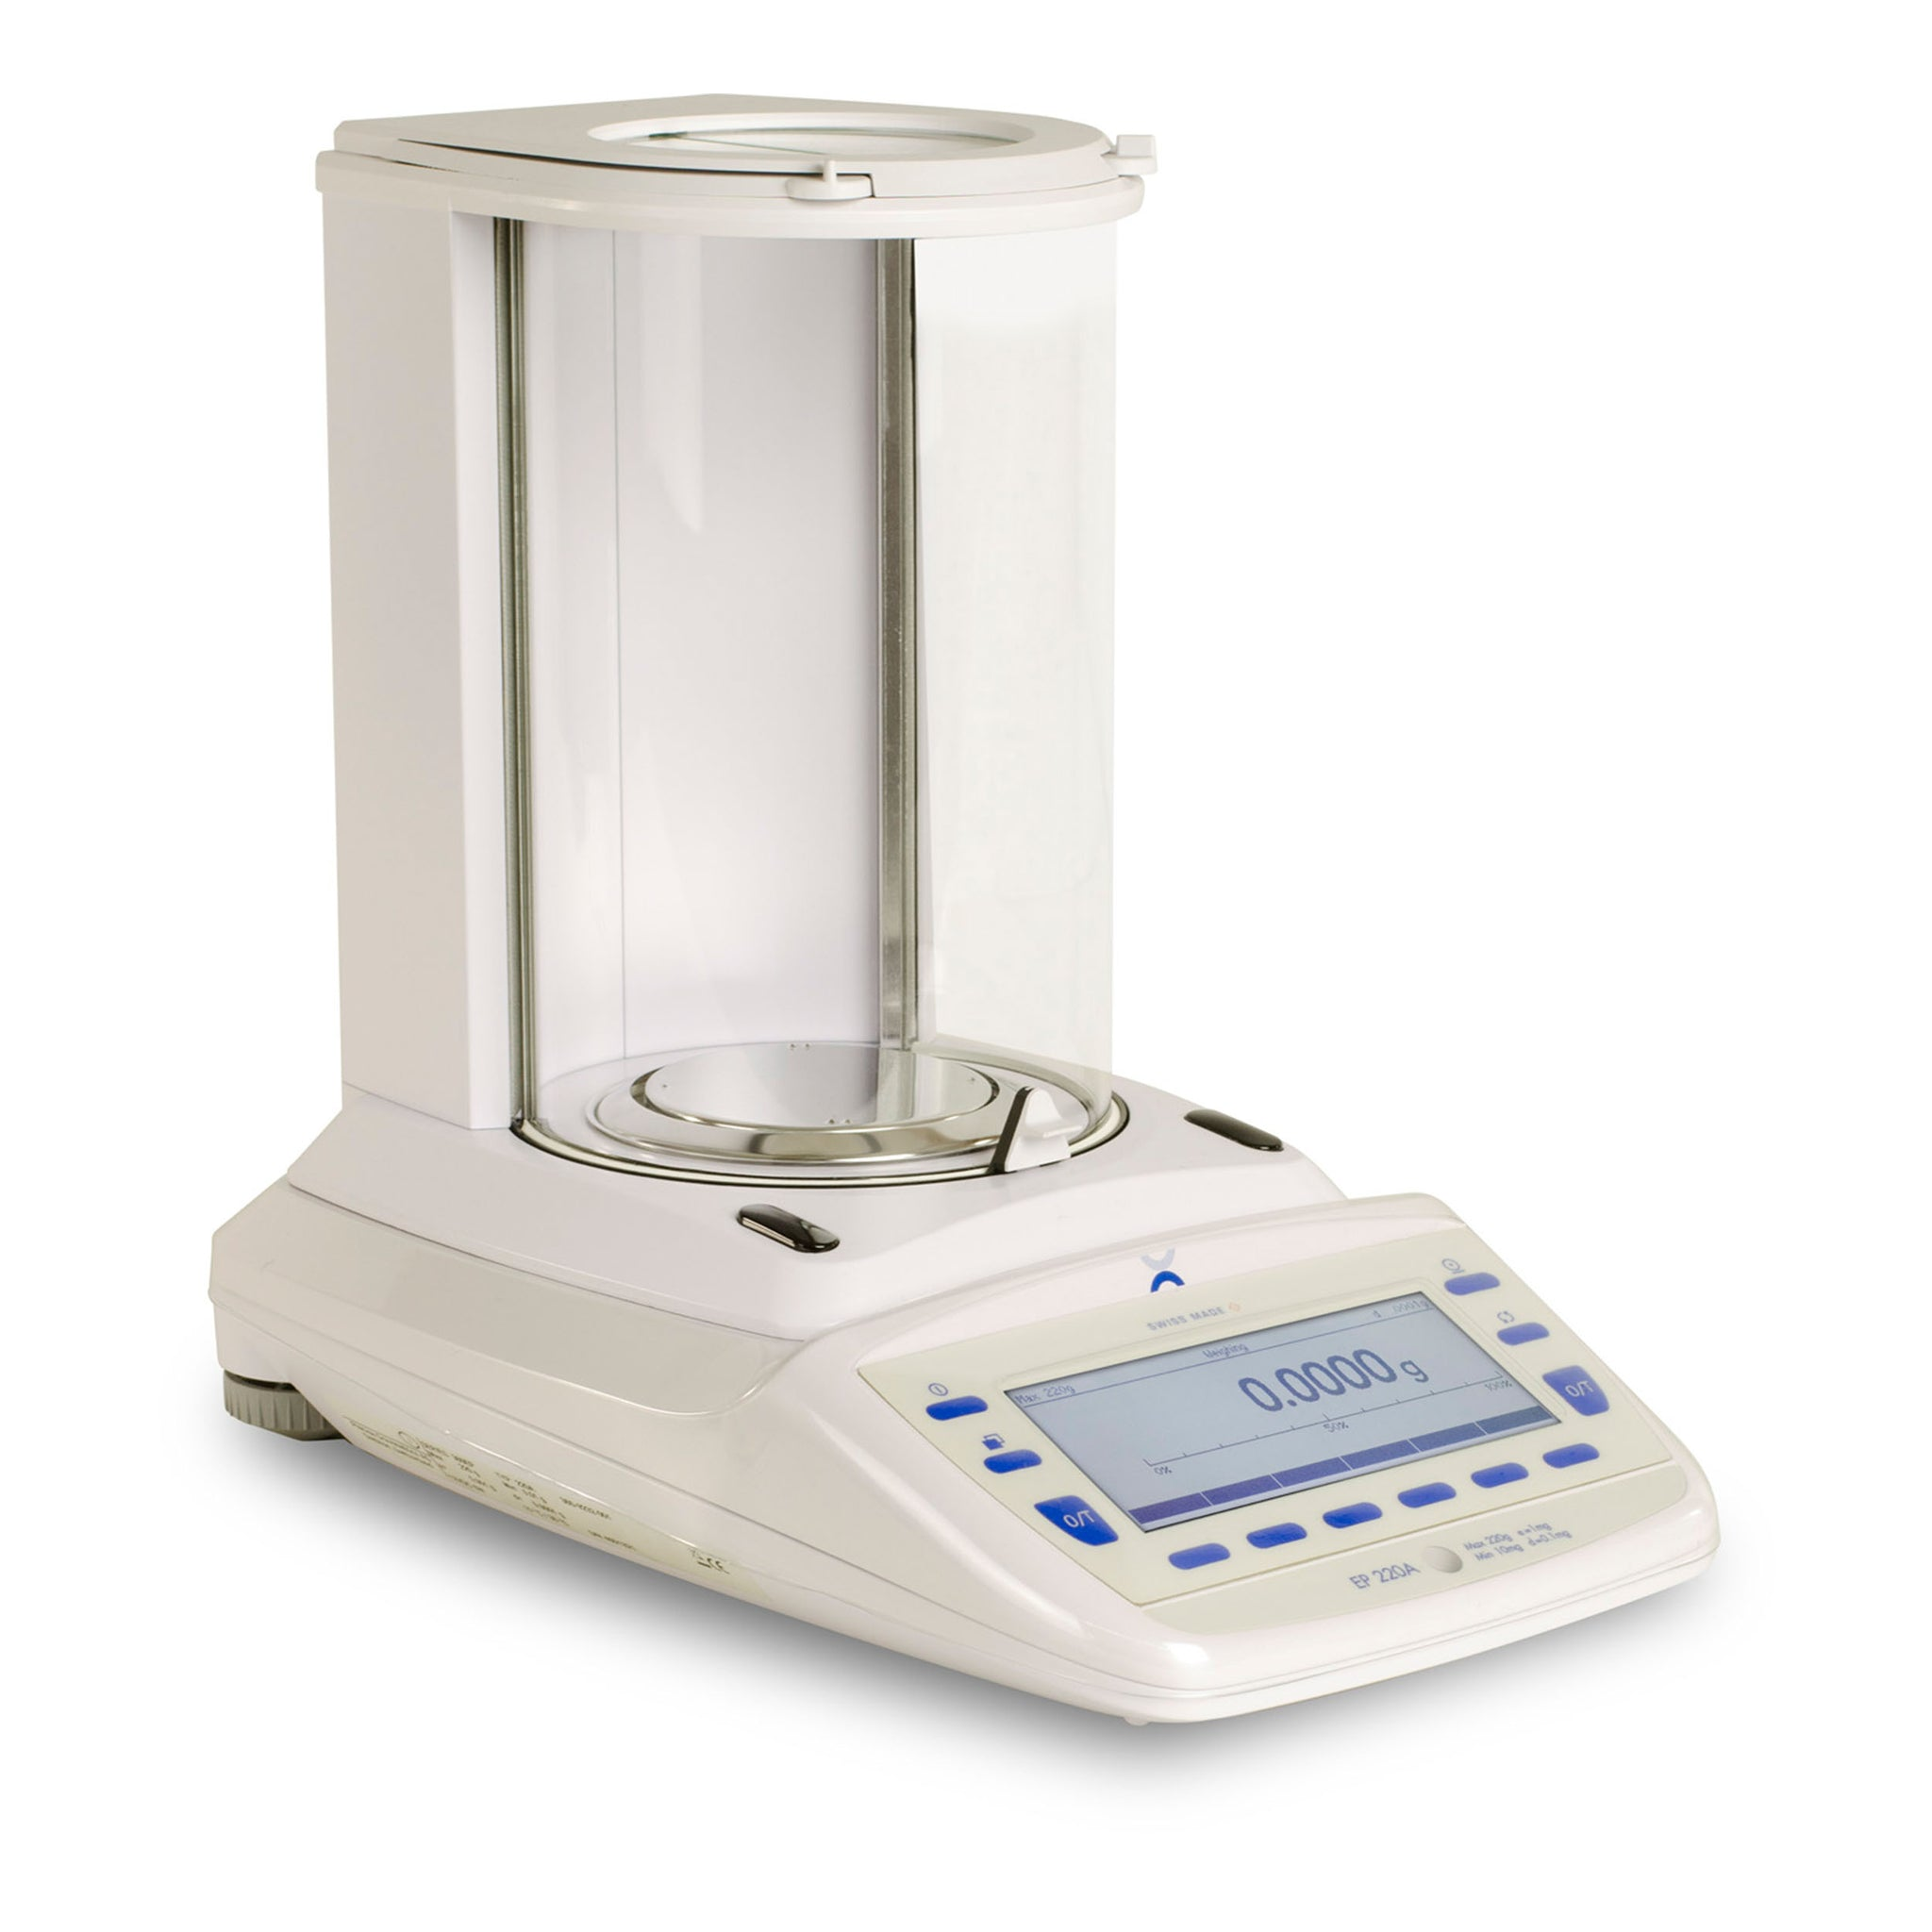 Precisa Executive Pro EP220A Analytical Balance, 220 g x 0.1 mg